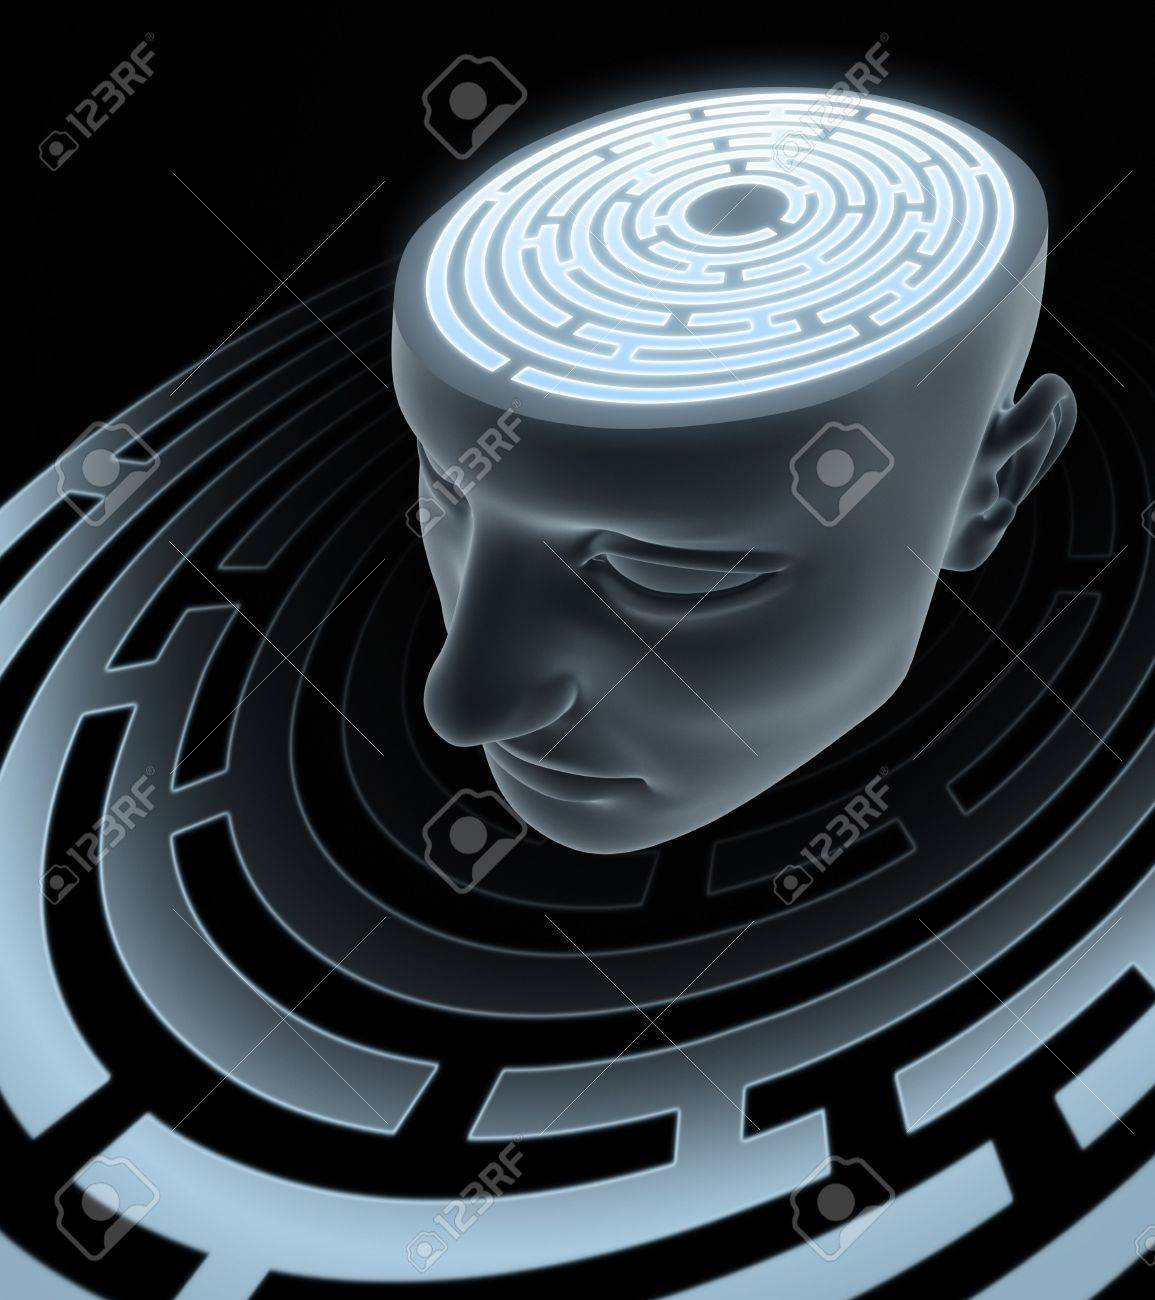 Psychic Mind. Labyrinth inside of the head. Stock Photo - 3705722